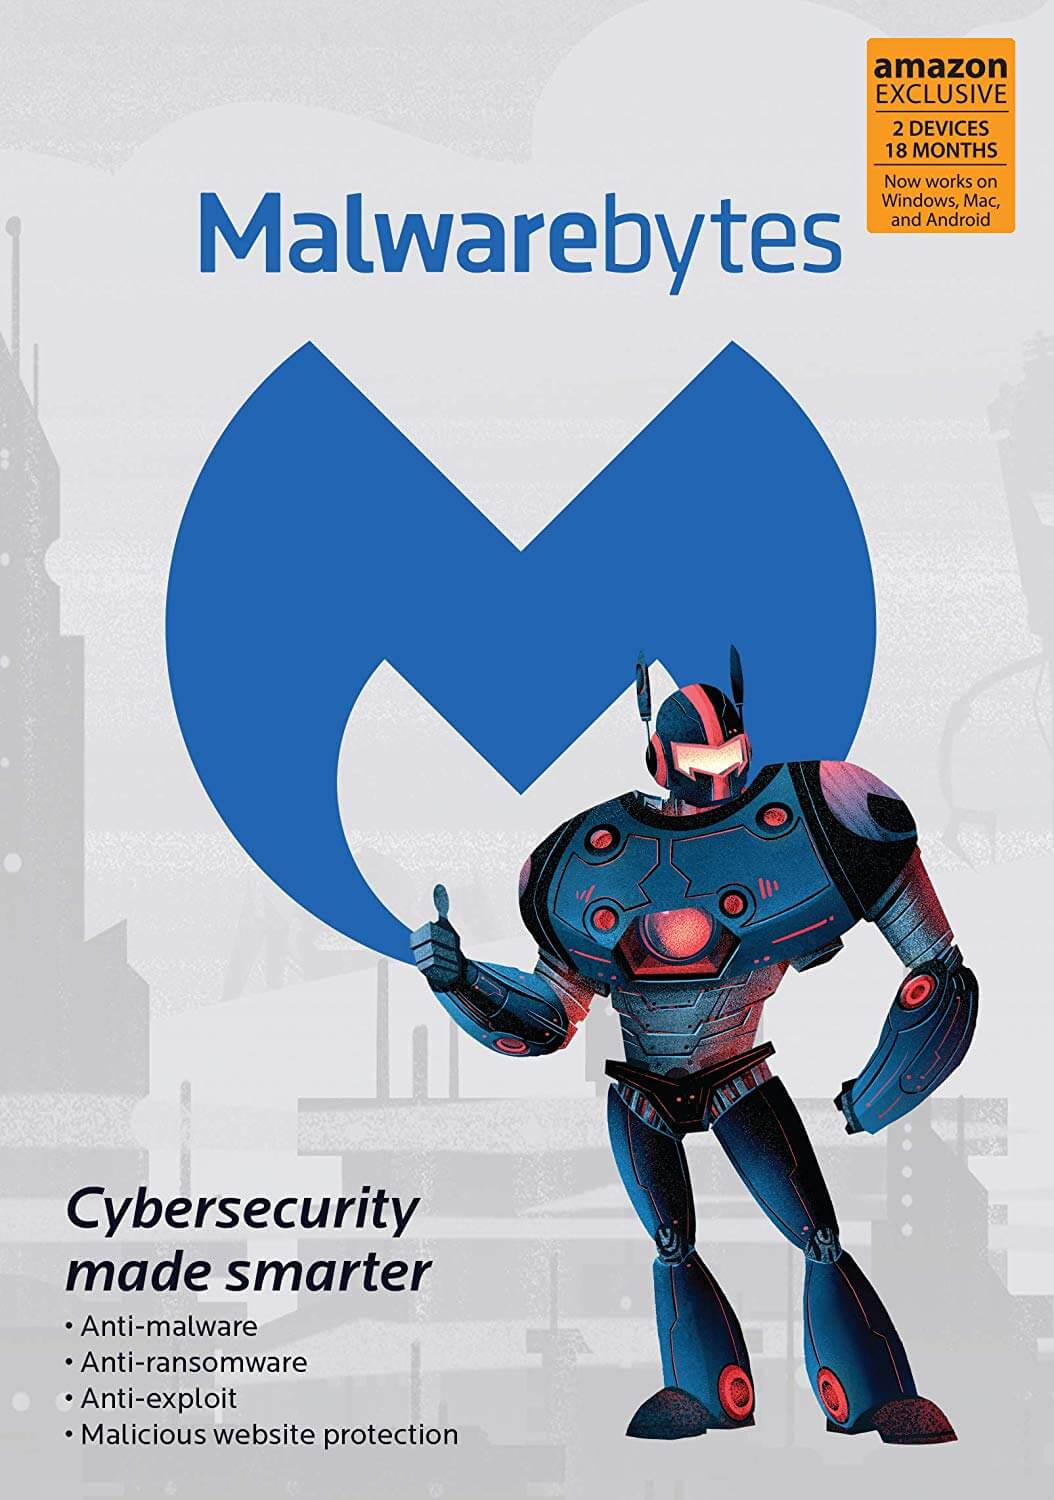 Malwarebytes Amazon Exclusive 18 Months 2 Devices (PC Mac Android)